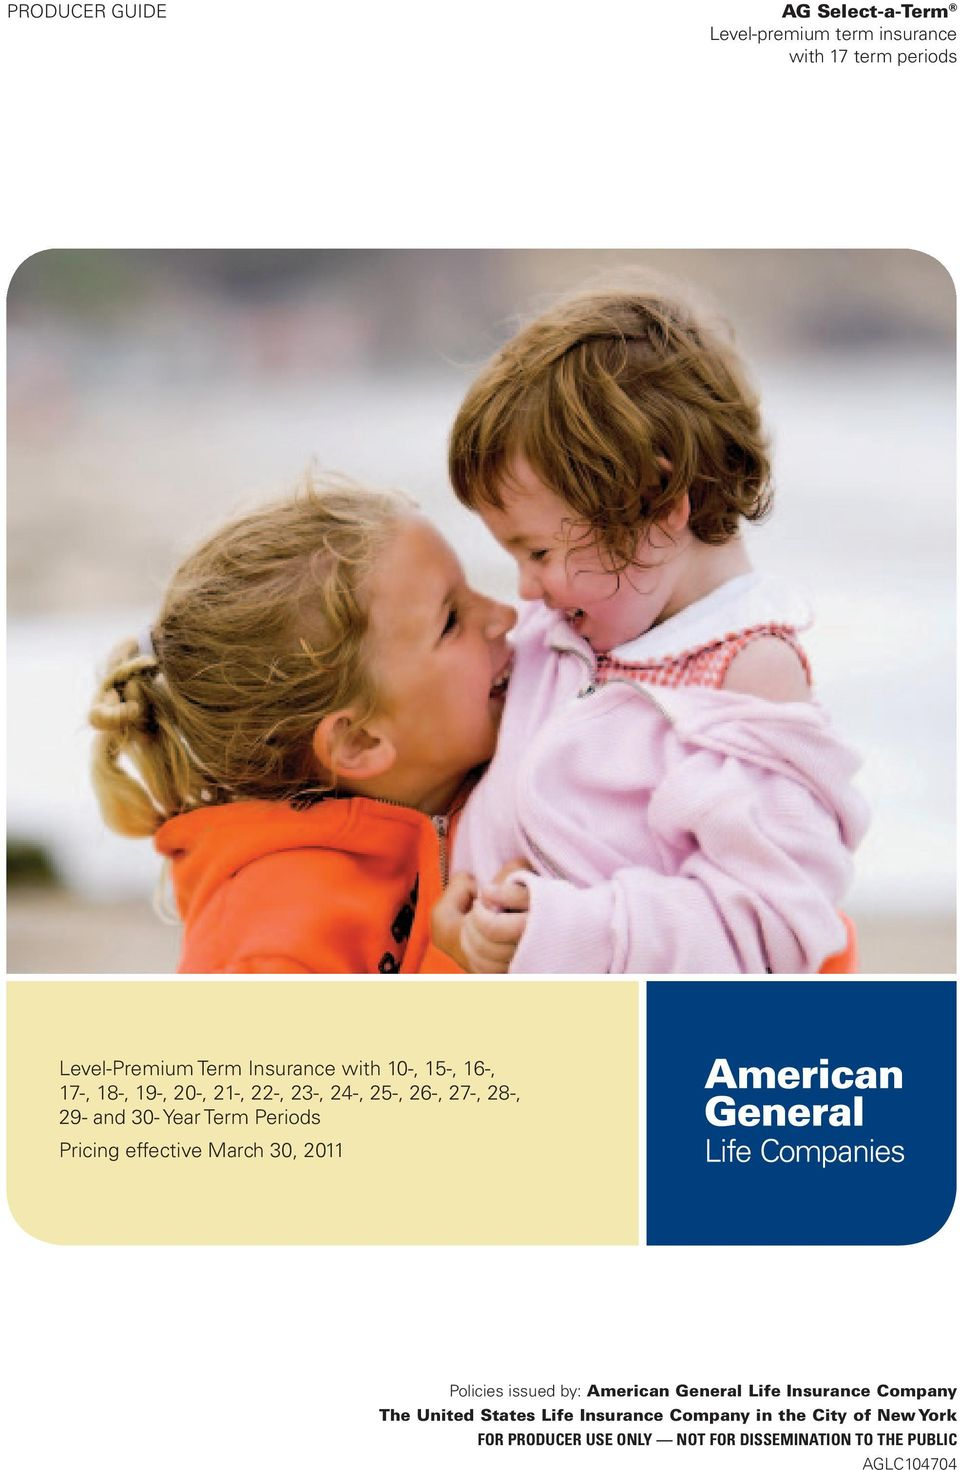 Pricing effective March 30, 2011 Policies issued by: American General Life Insurance Company The United States